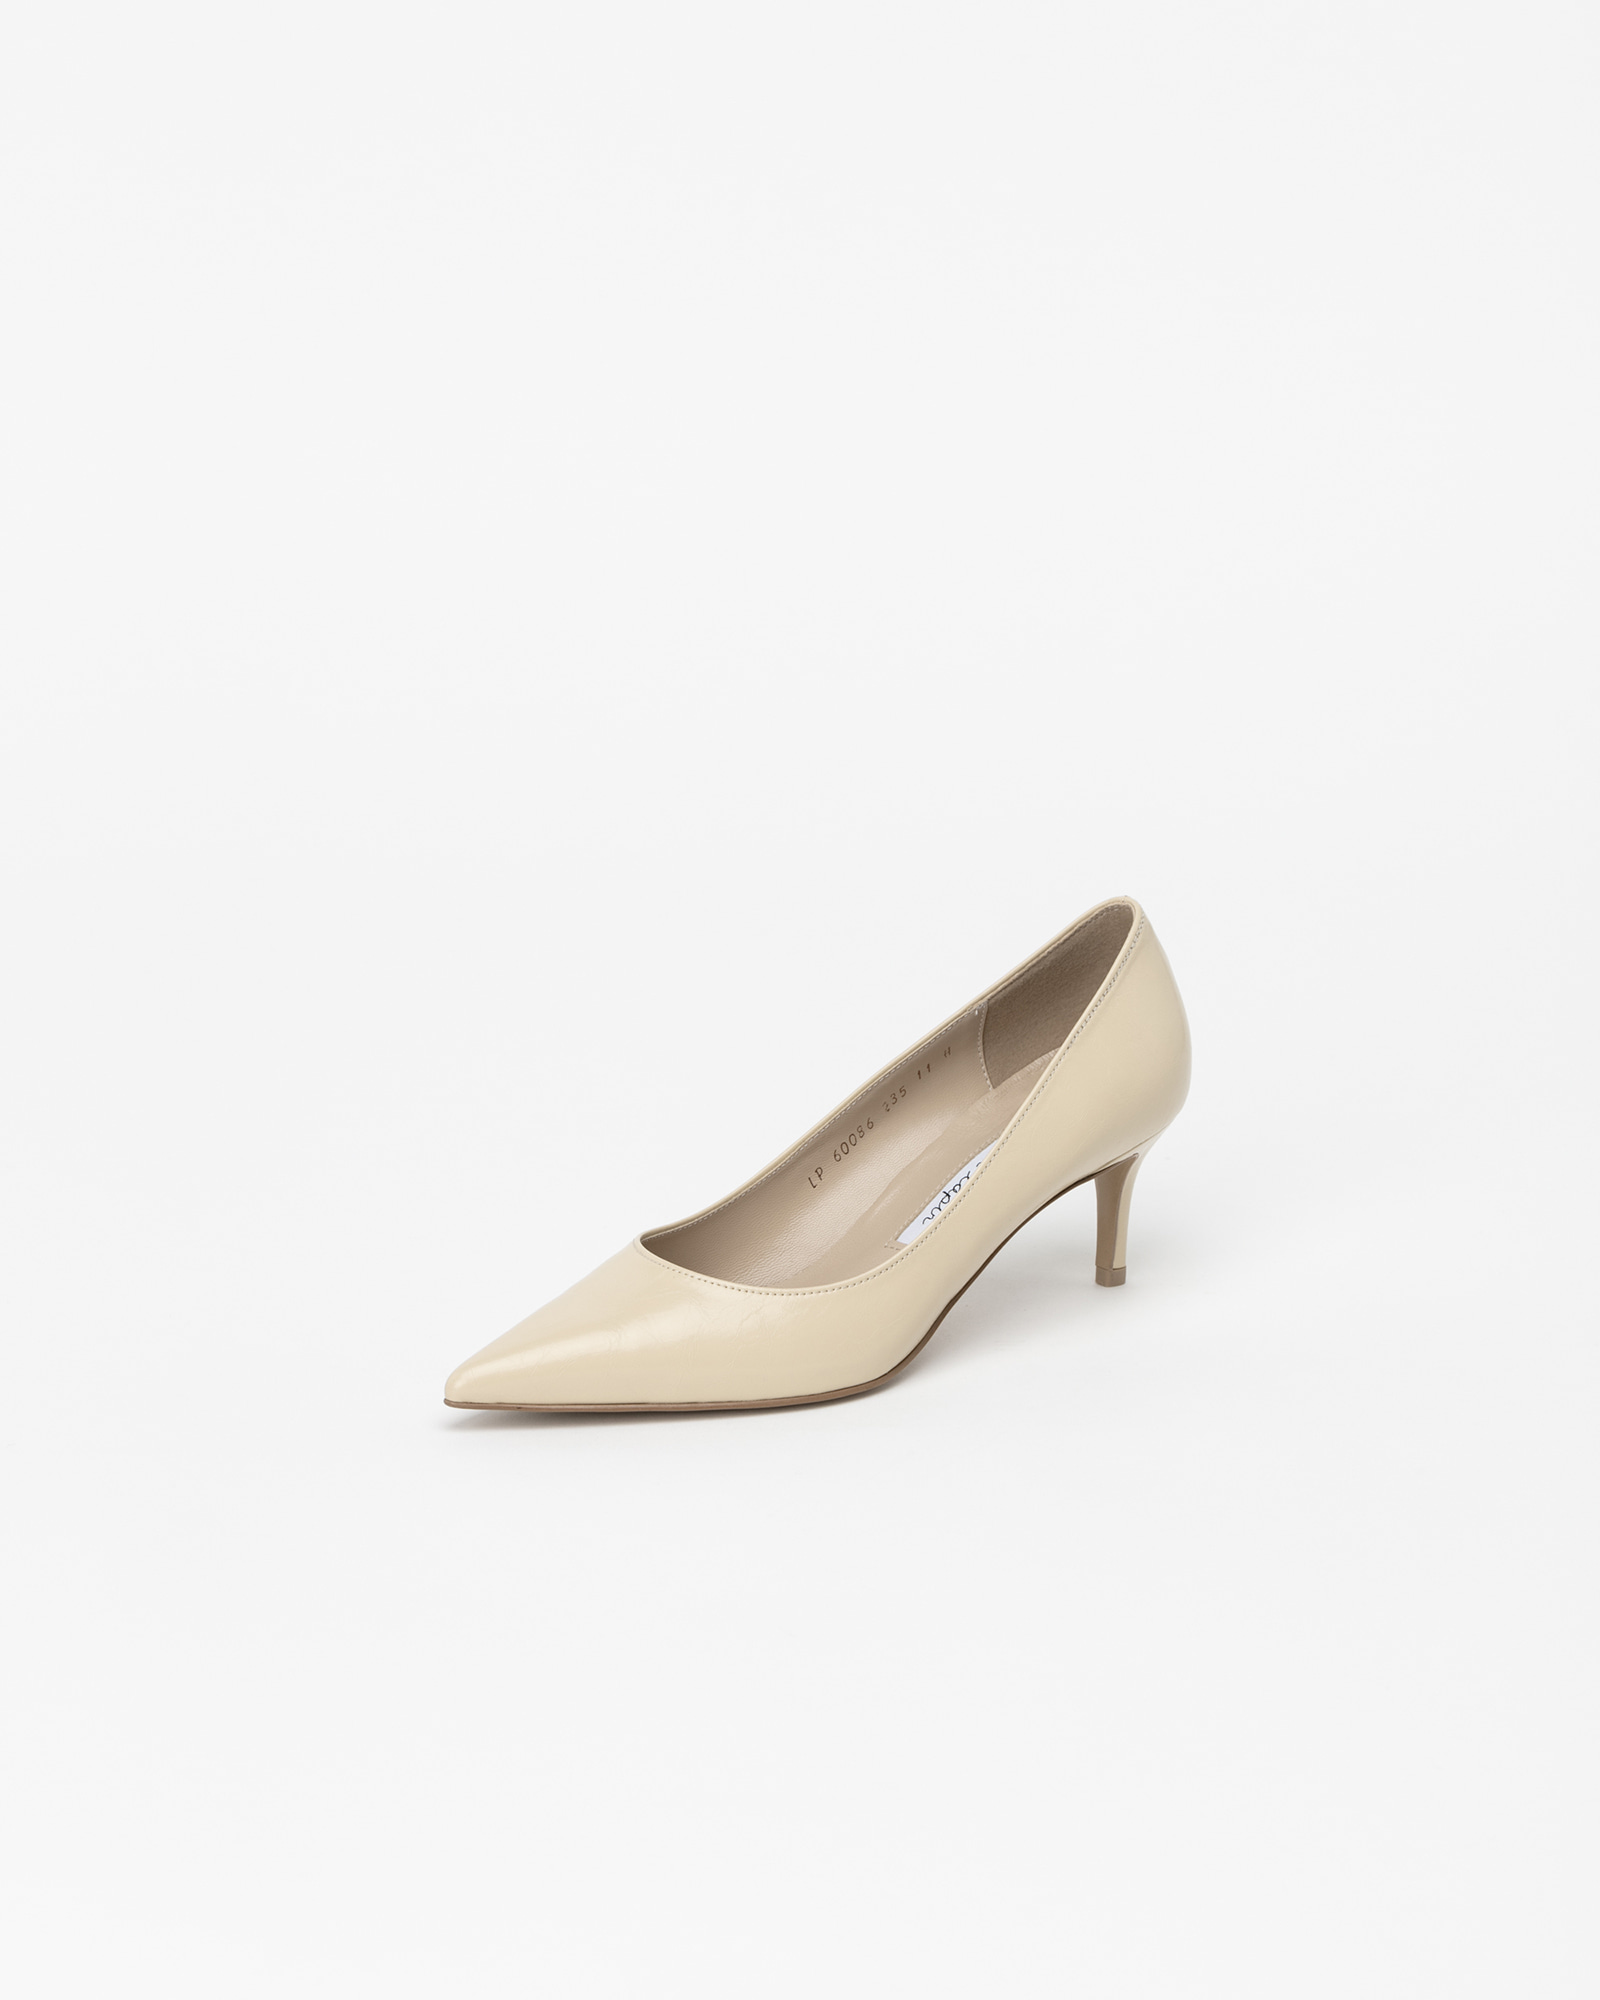 Chauffeur Stiletto Pumps in Wrinkled Light Yellow